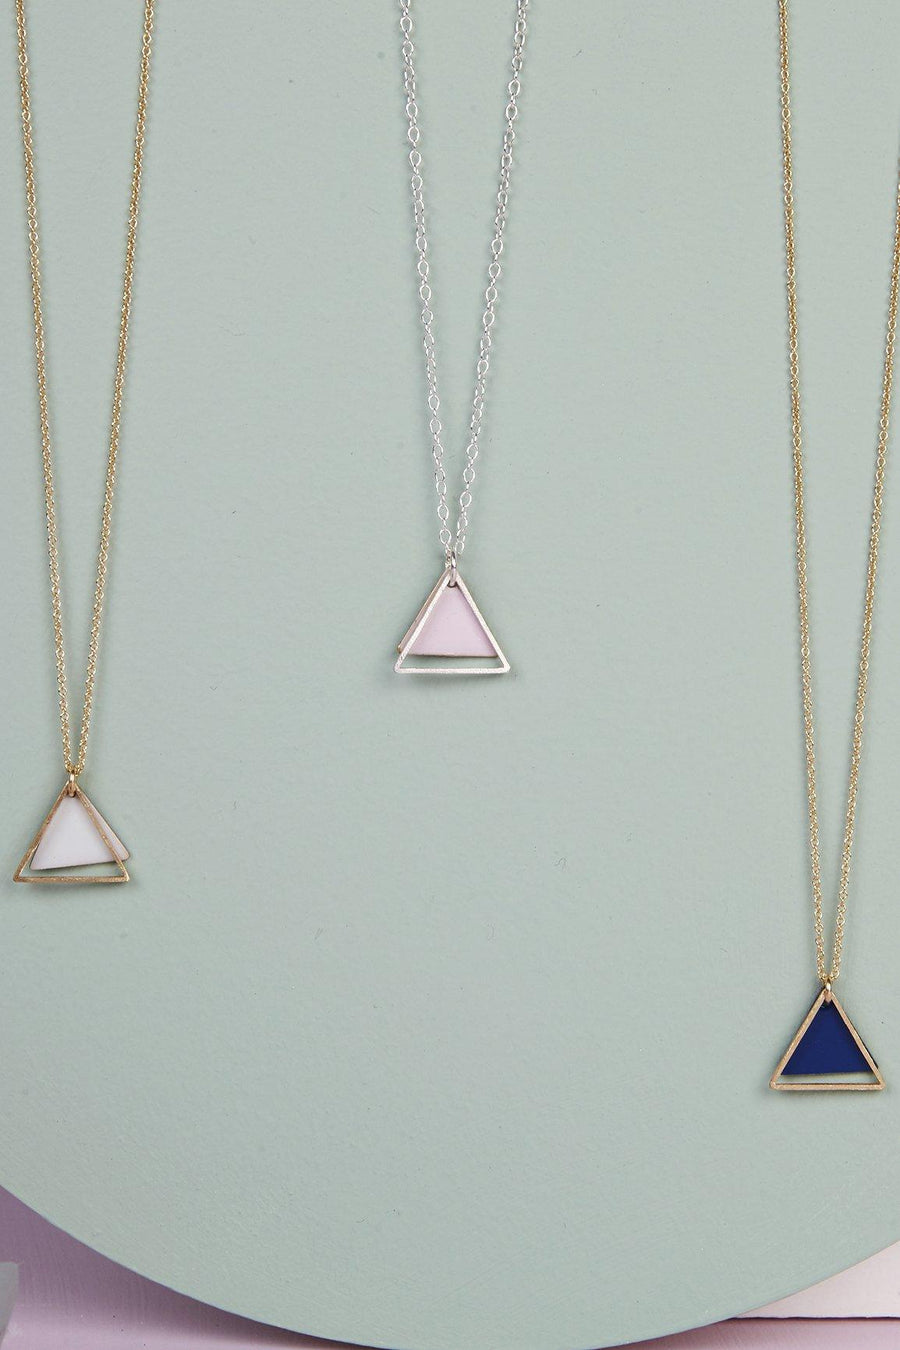 Mini Double Triangle Necklace (Pink-Mint-White-Navy Blue)